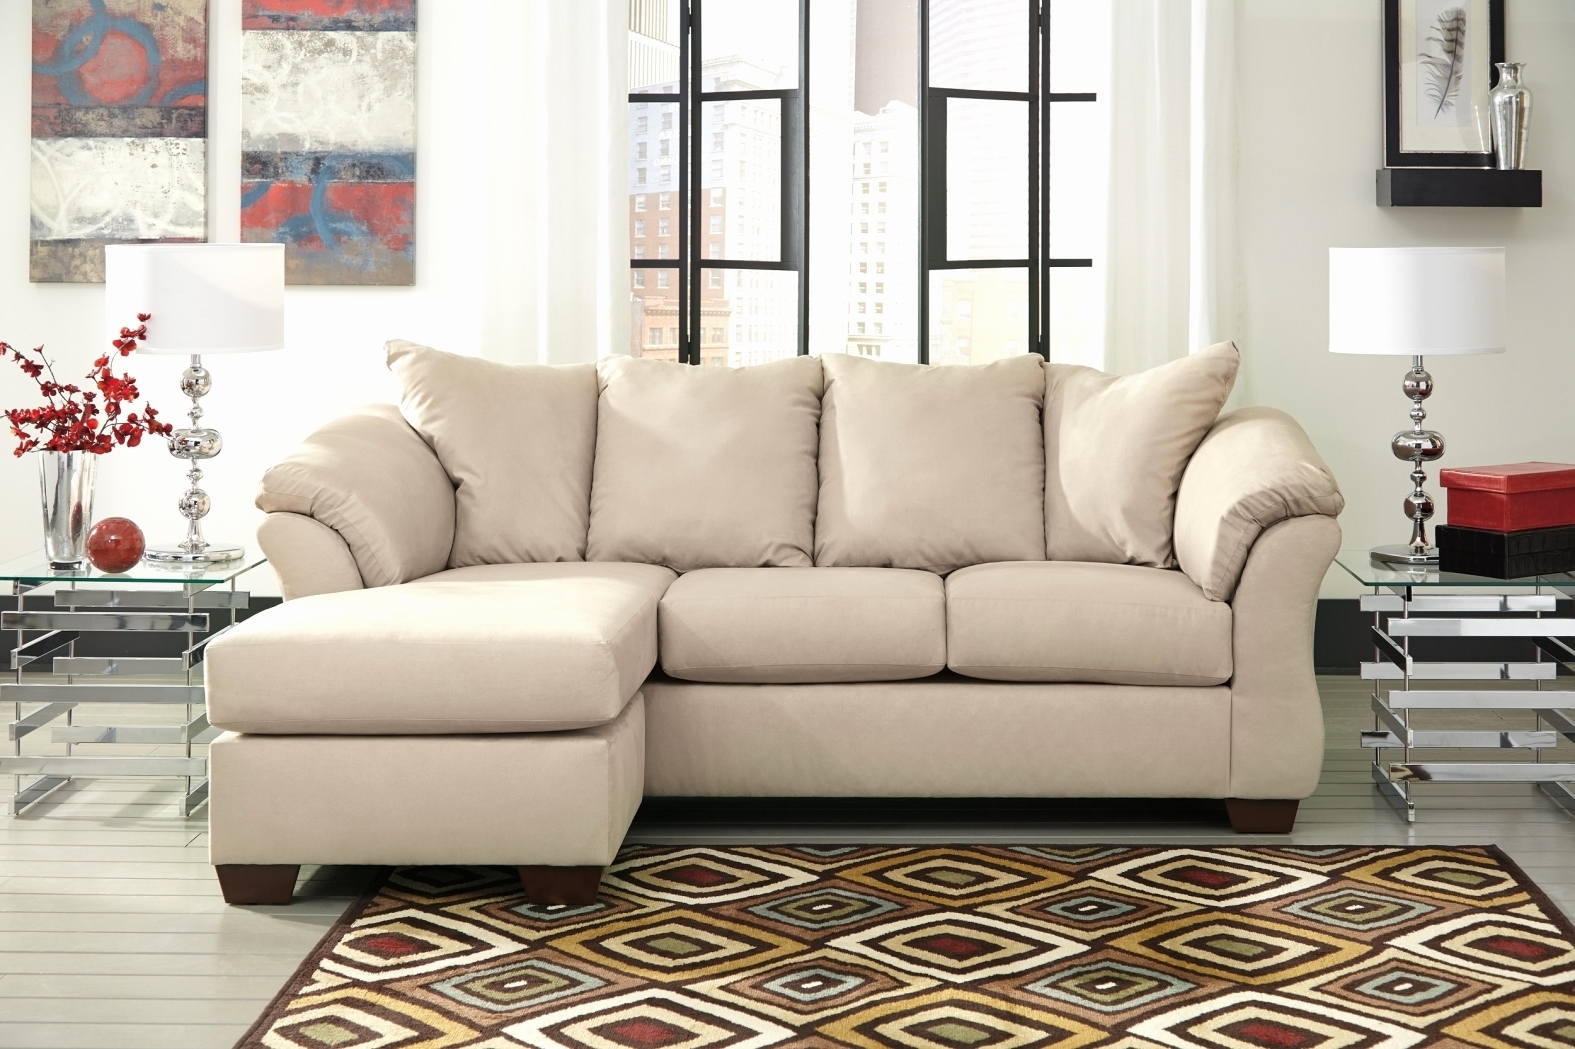 Recent Okc Sectional Sofas Inside 33 Majestic Sectional Sofas Okc Pictures – Sectional Sofa Design Ideas (View 16 of 20)